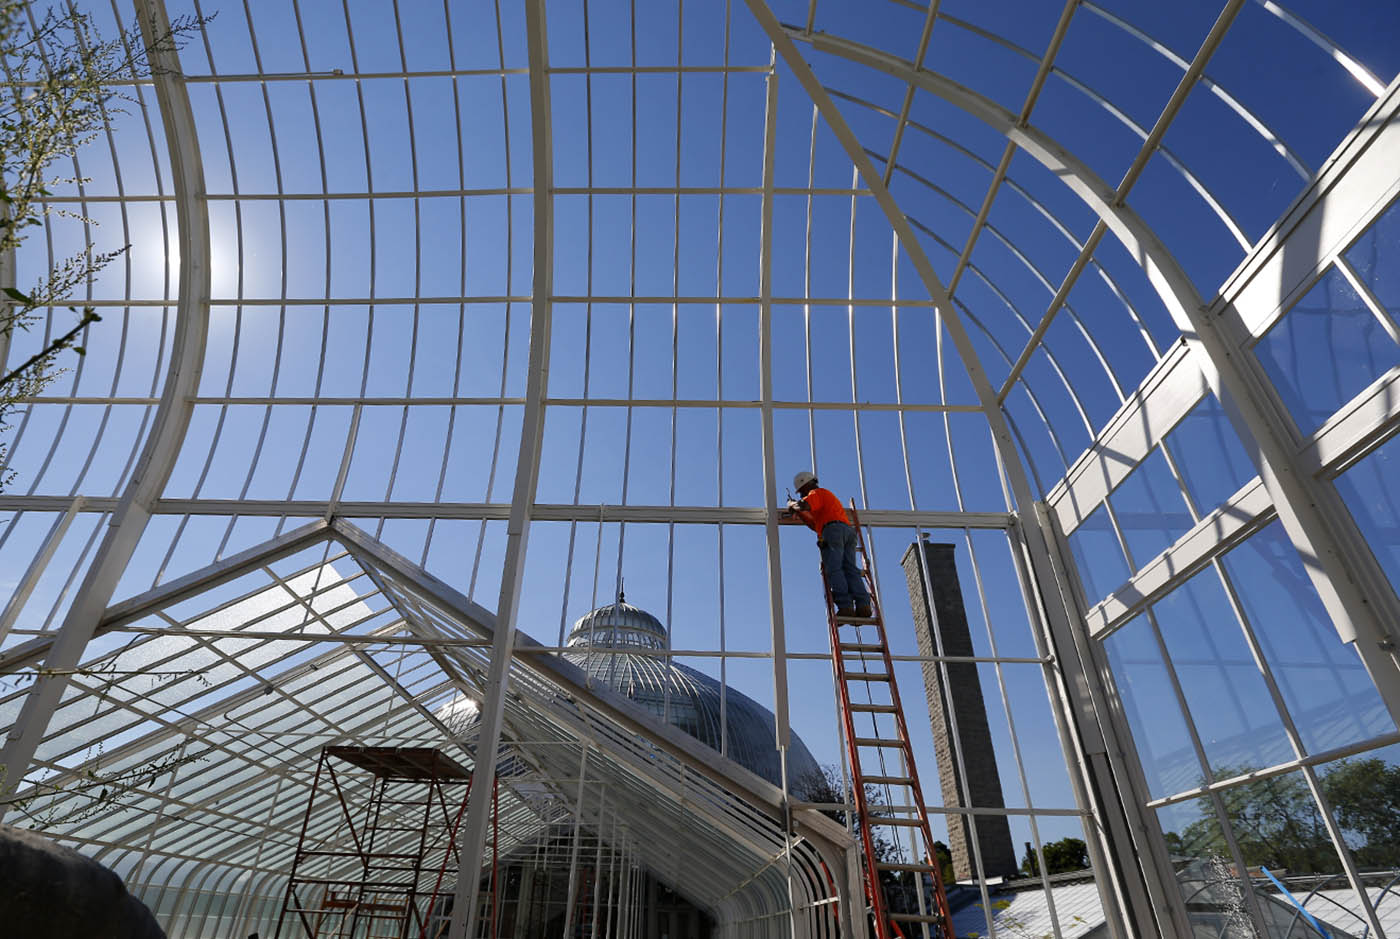 Pictures, Jose Morales works on the frame of the greenhouse at the Buffalo and Erie County Botanical Gardens in Buffalo Tuesday, September 13, 2016. (Mark Mulville/Buffalo News)